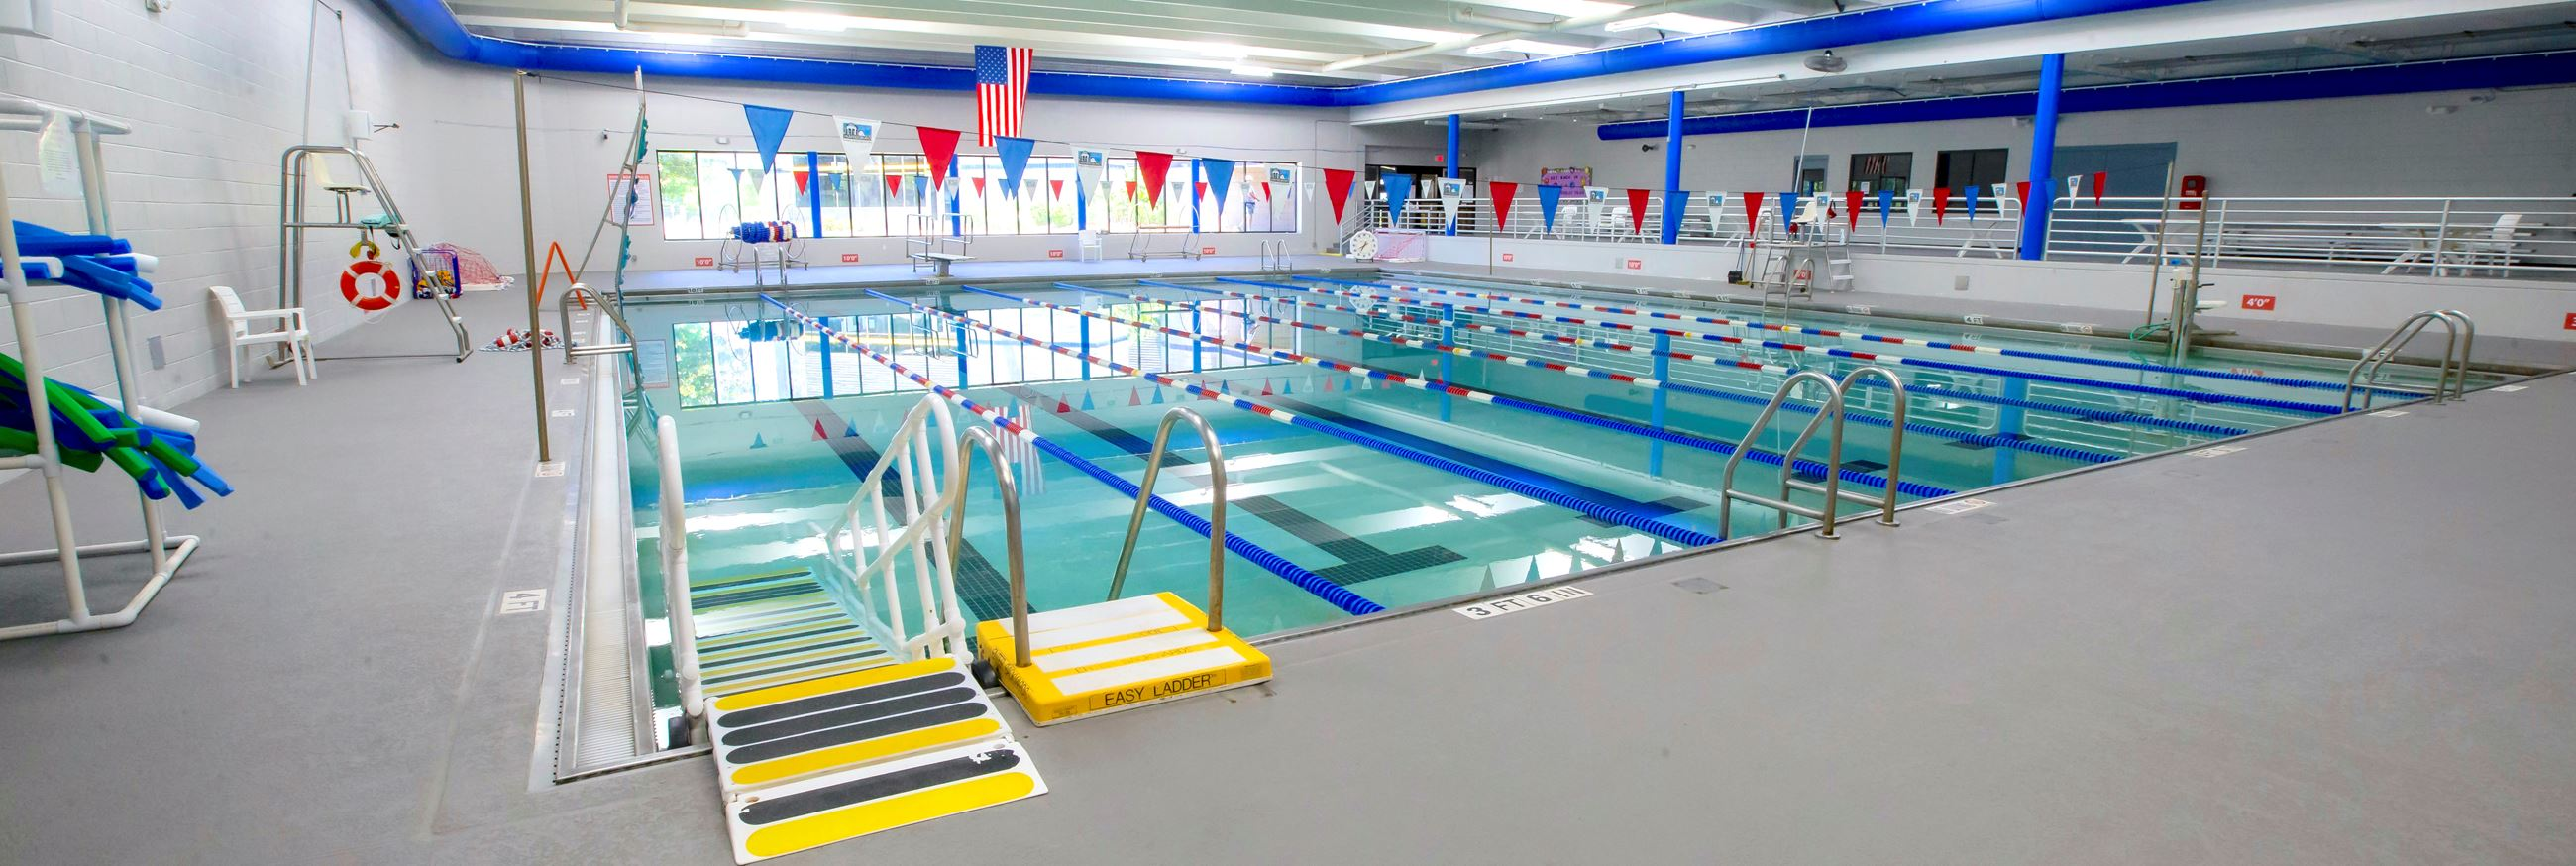 SportsCom_indoor_pool